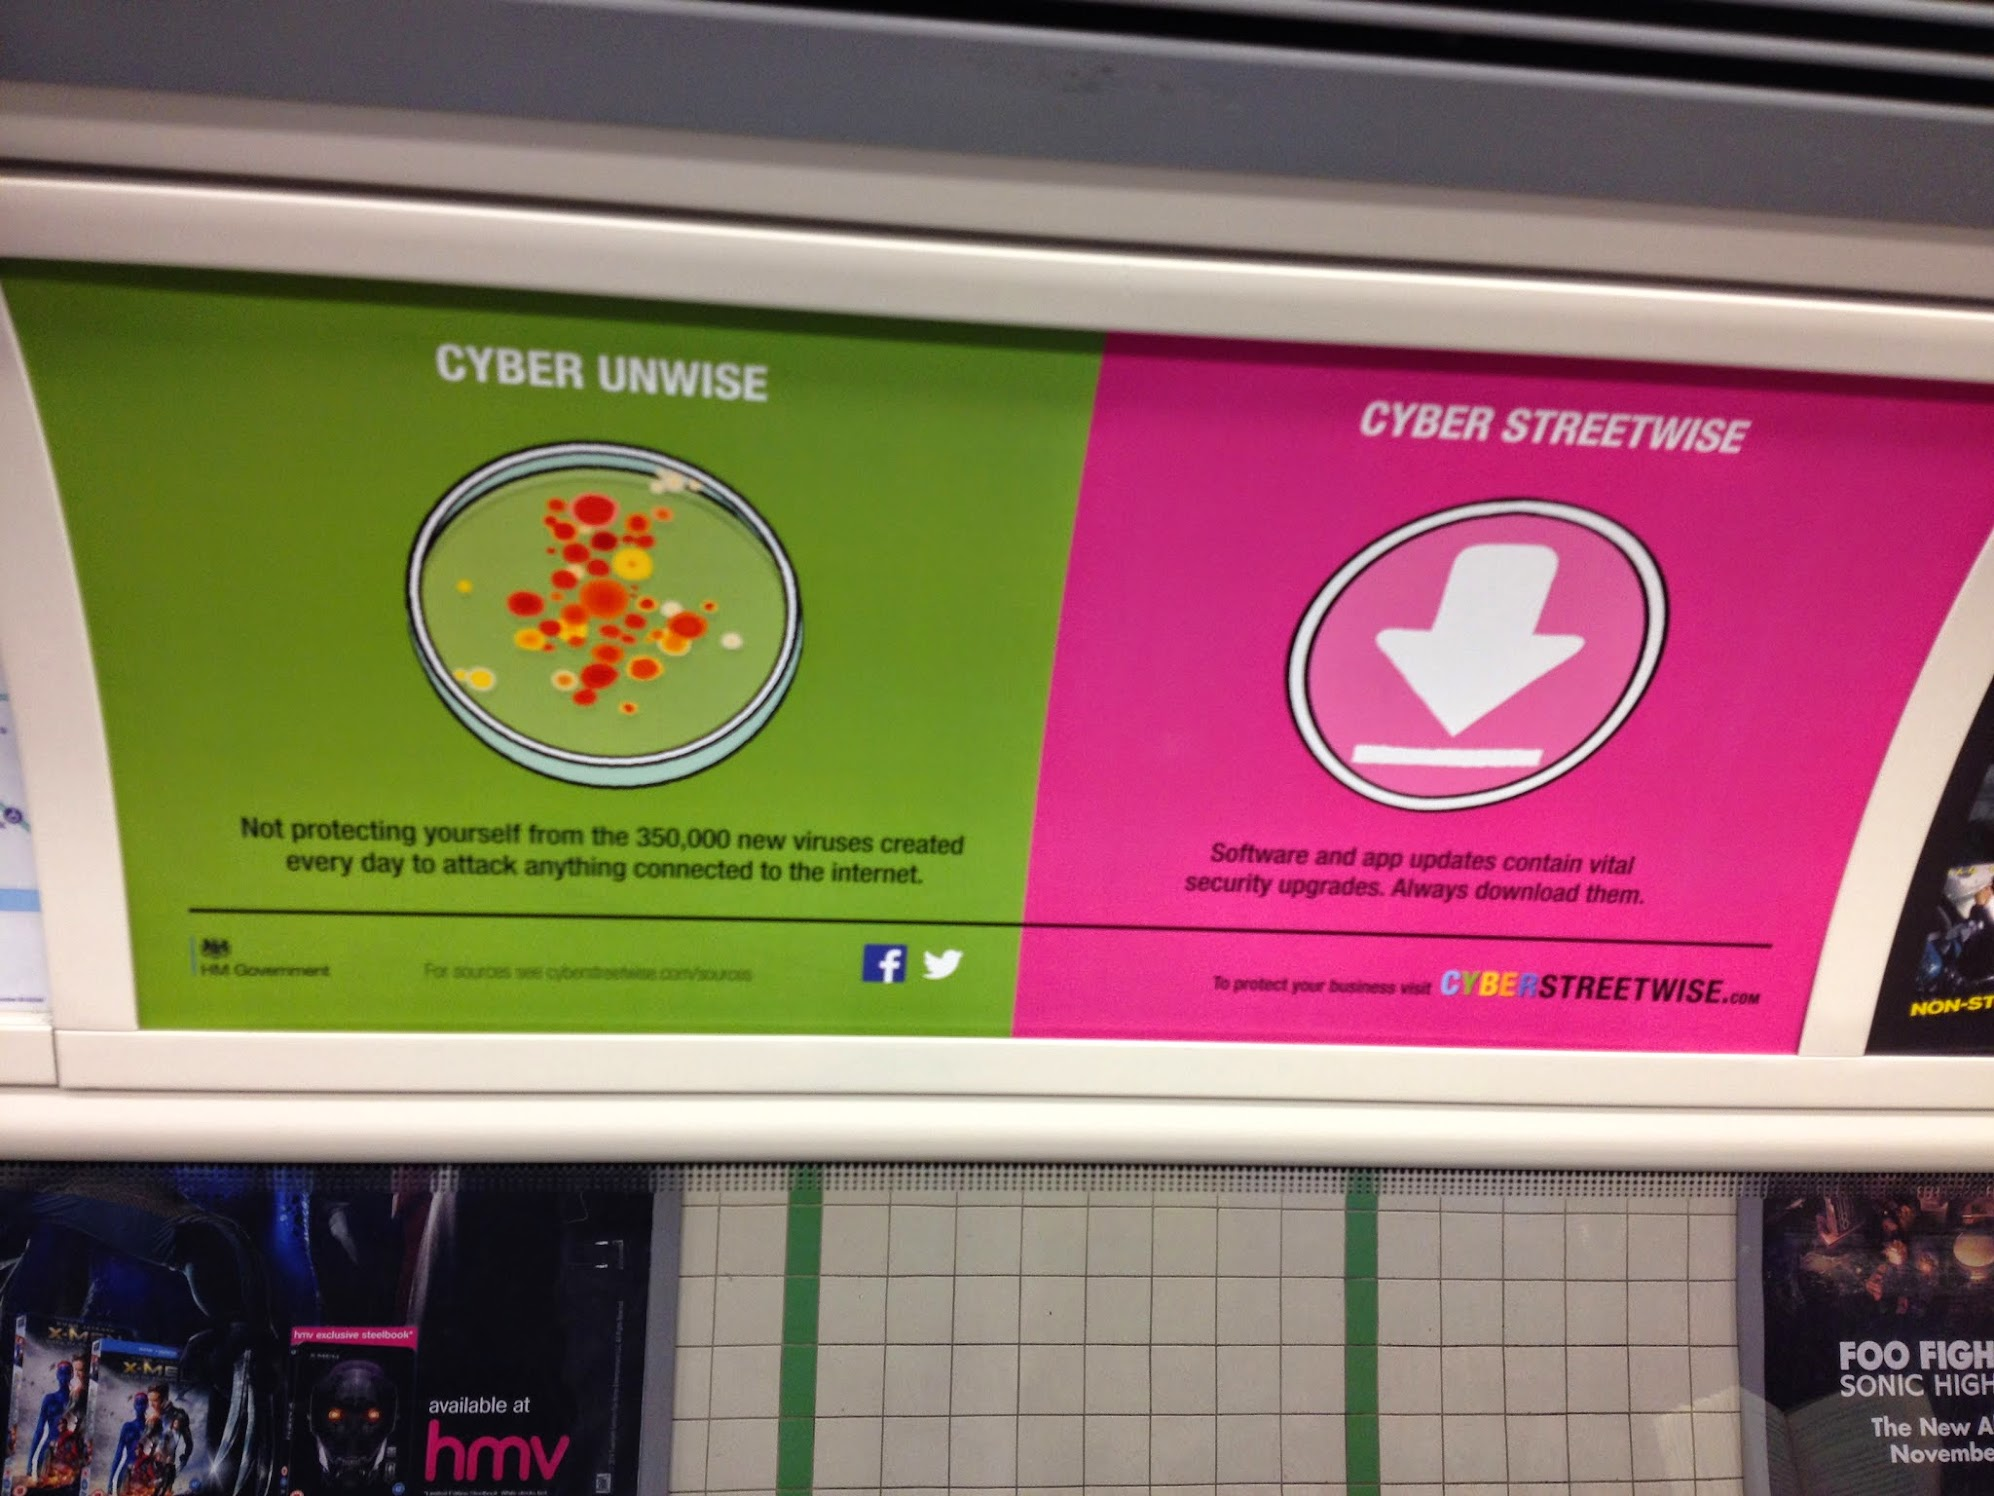 Tube Ad for Cyberstreetwise campaign